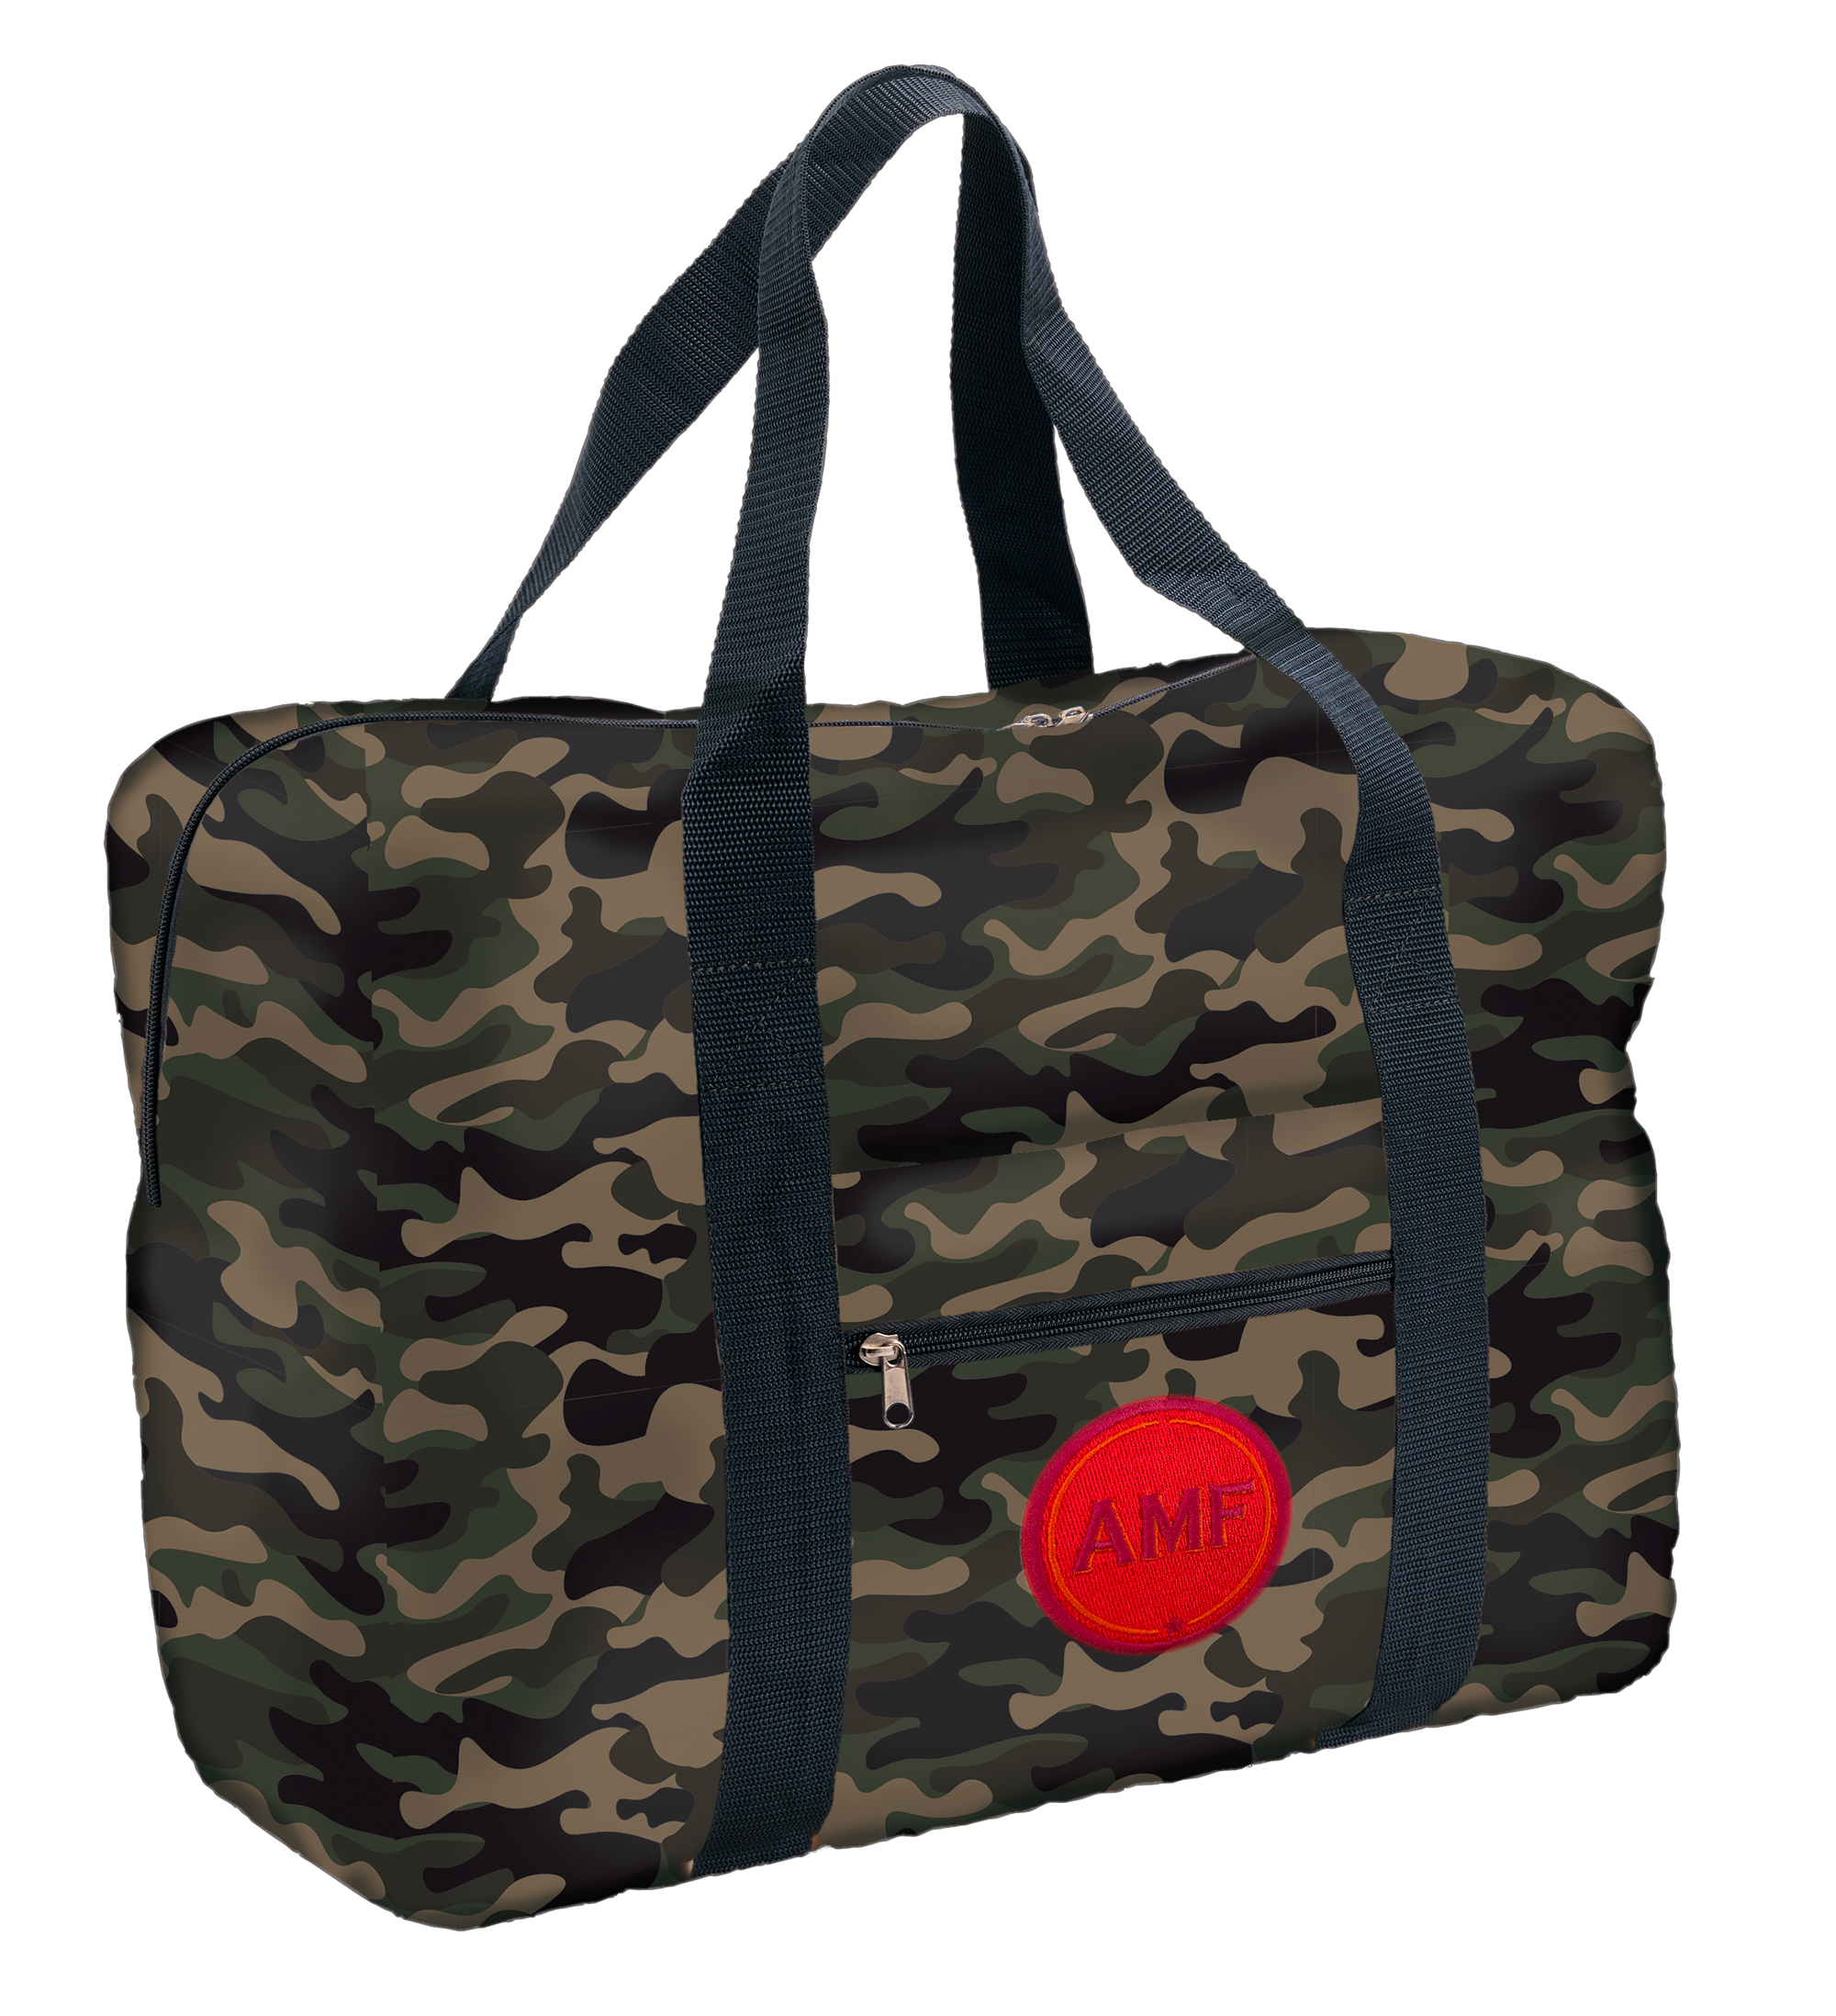 Easy Travel Bag CAMOUFLAGE mit Initialen-Patch